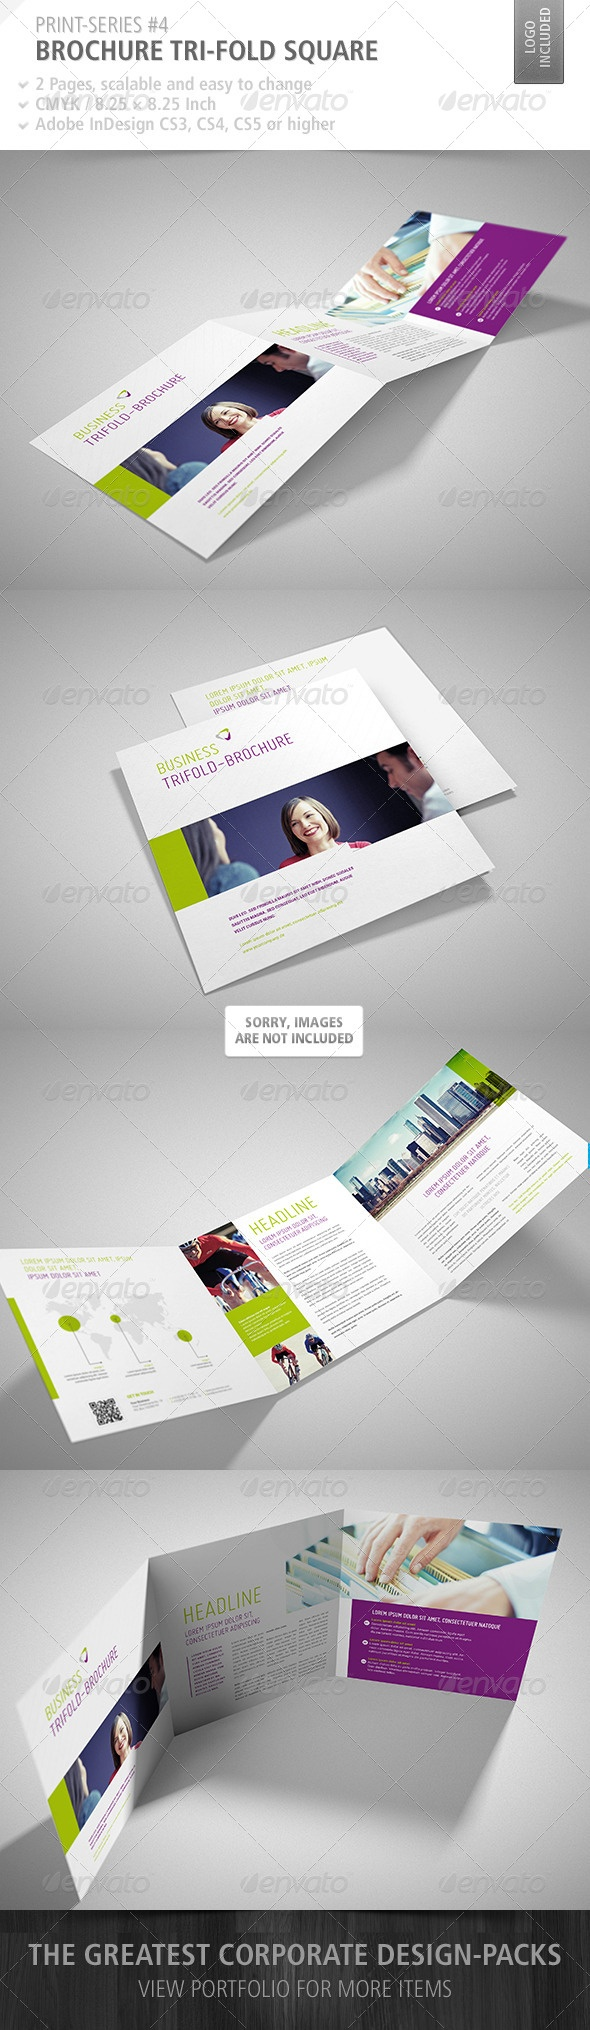 Brochure Tri-Fold Square Print-Series #4 - Corporate Brochures @Treefrog Marketing